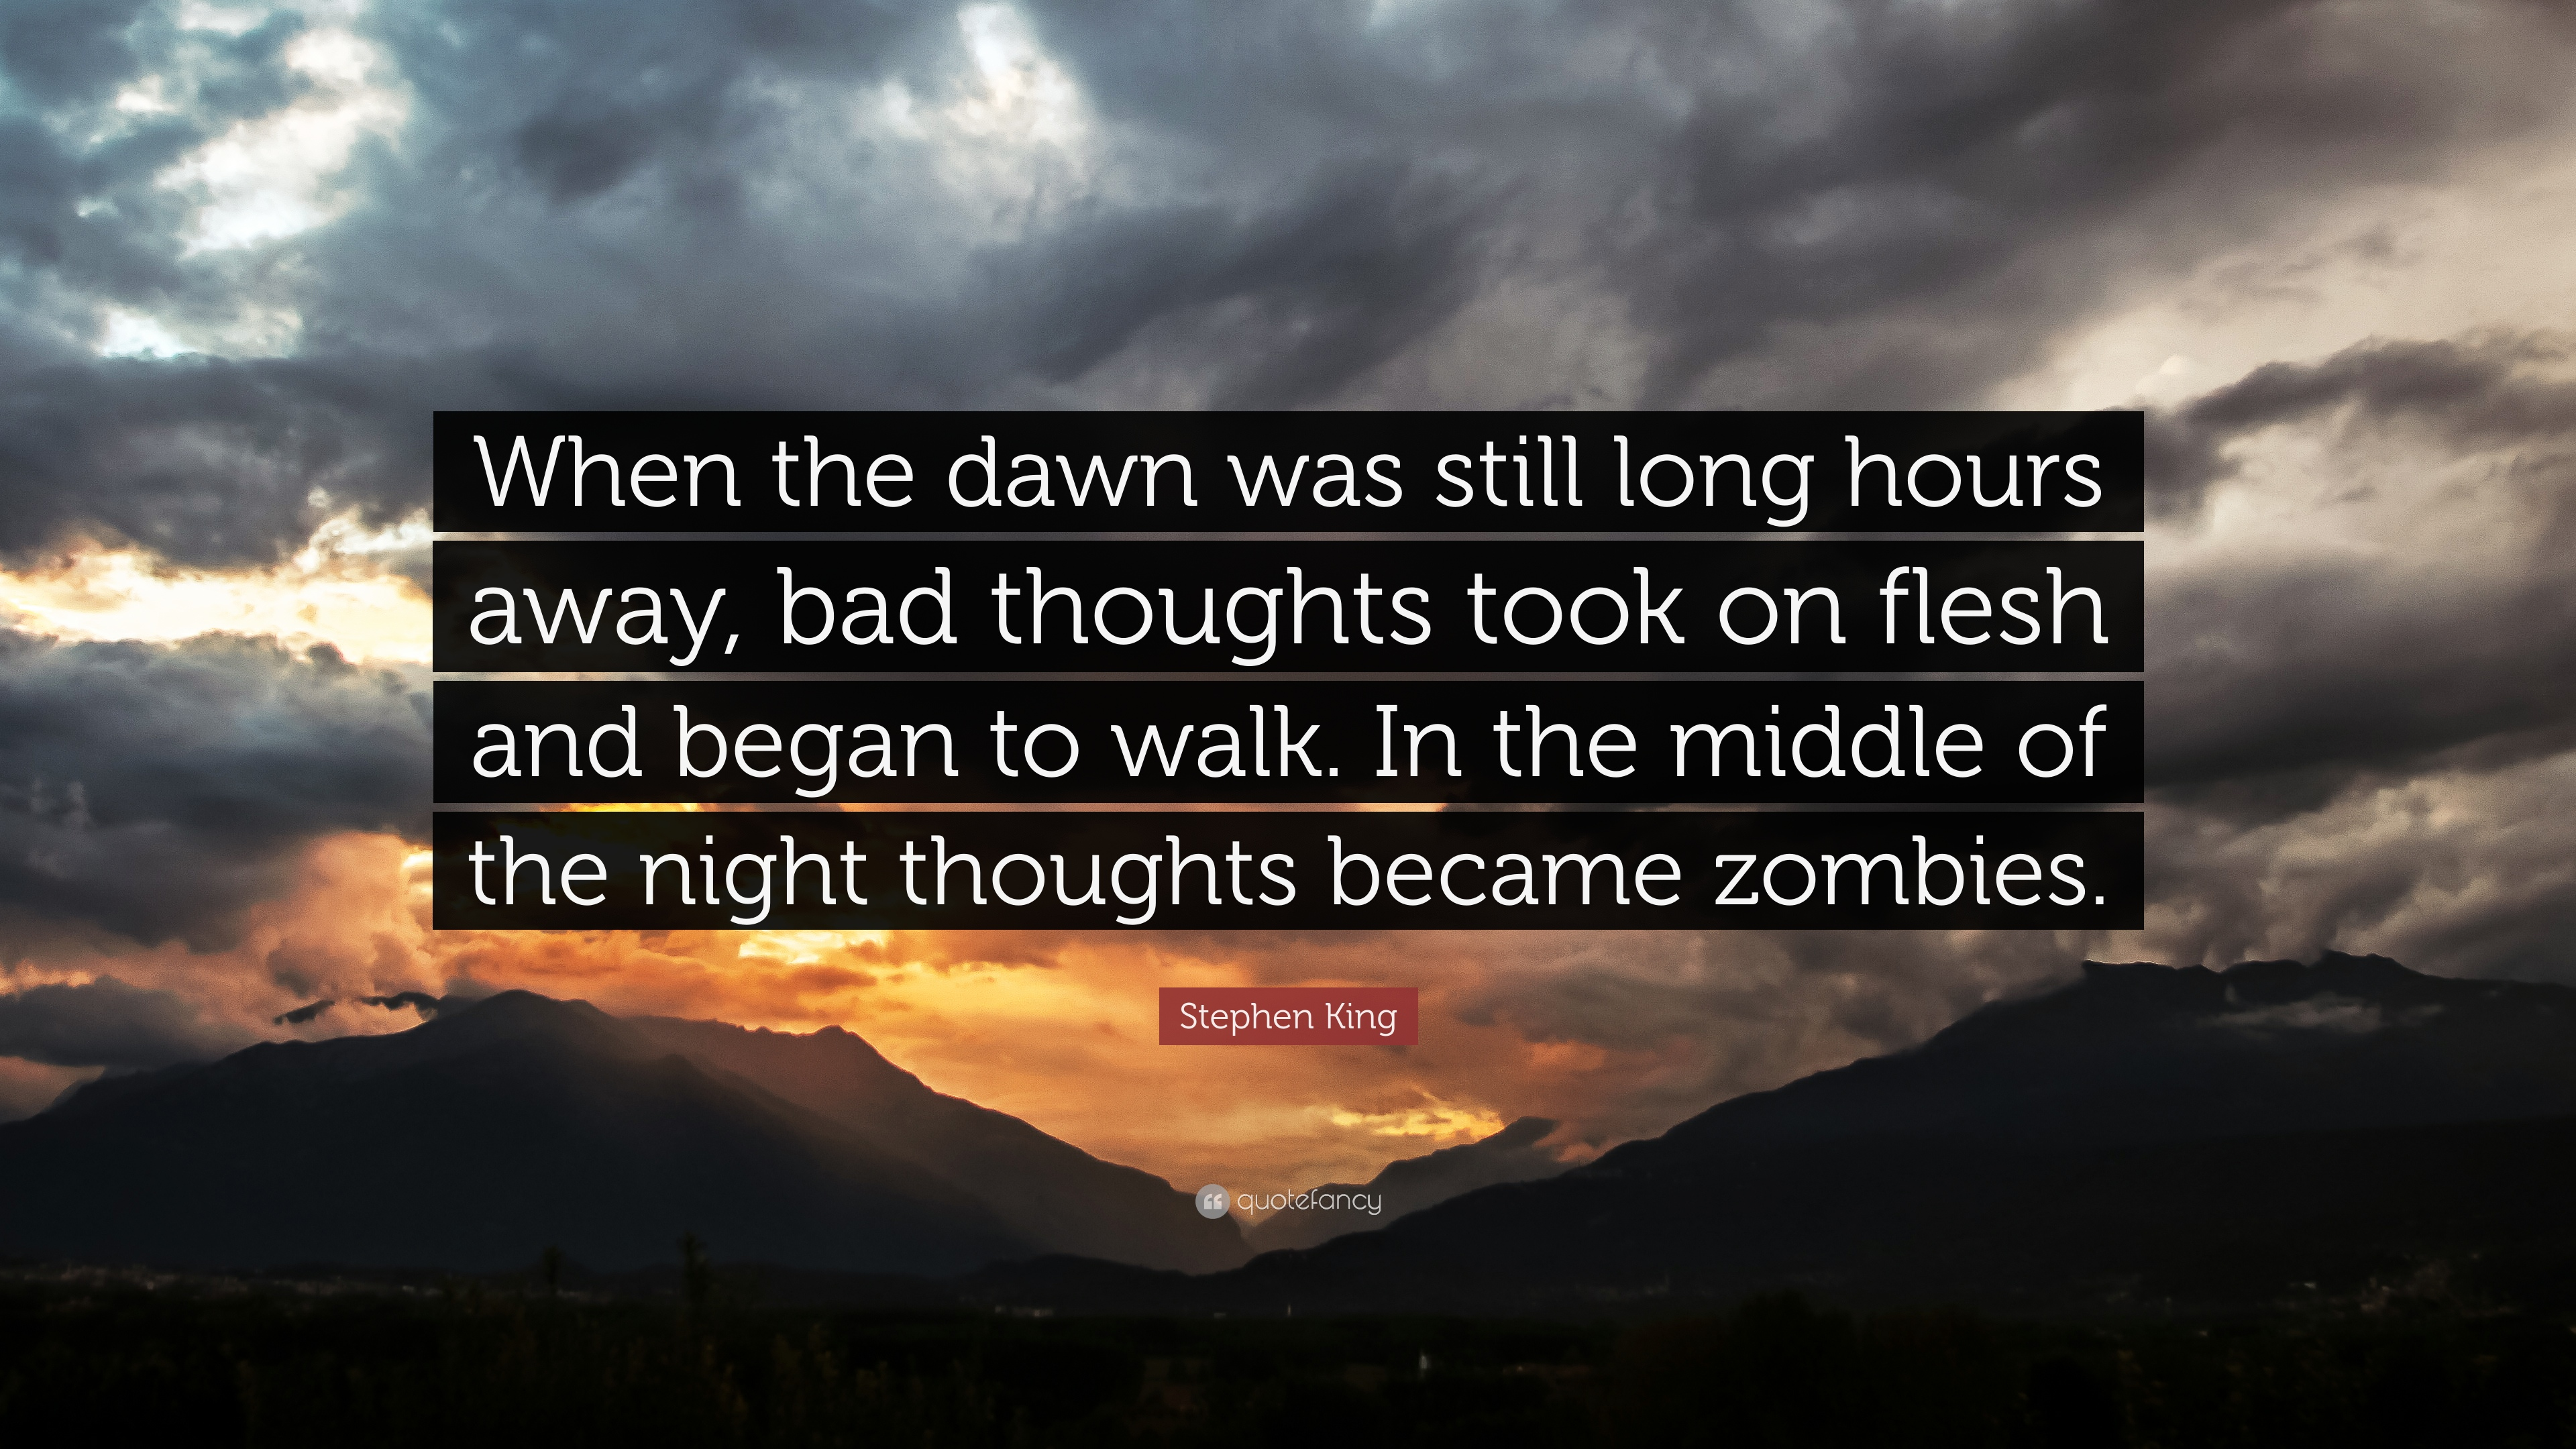 Quotes for Writers and people who like quotes STEPHEN KING on why bad writing is good for you